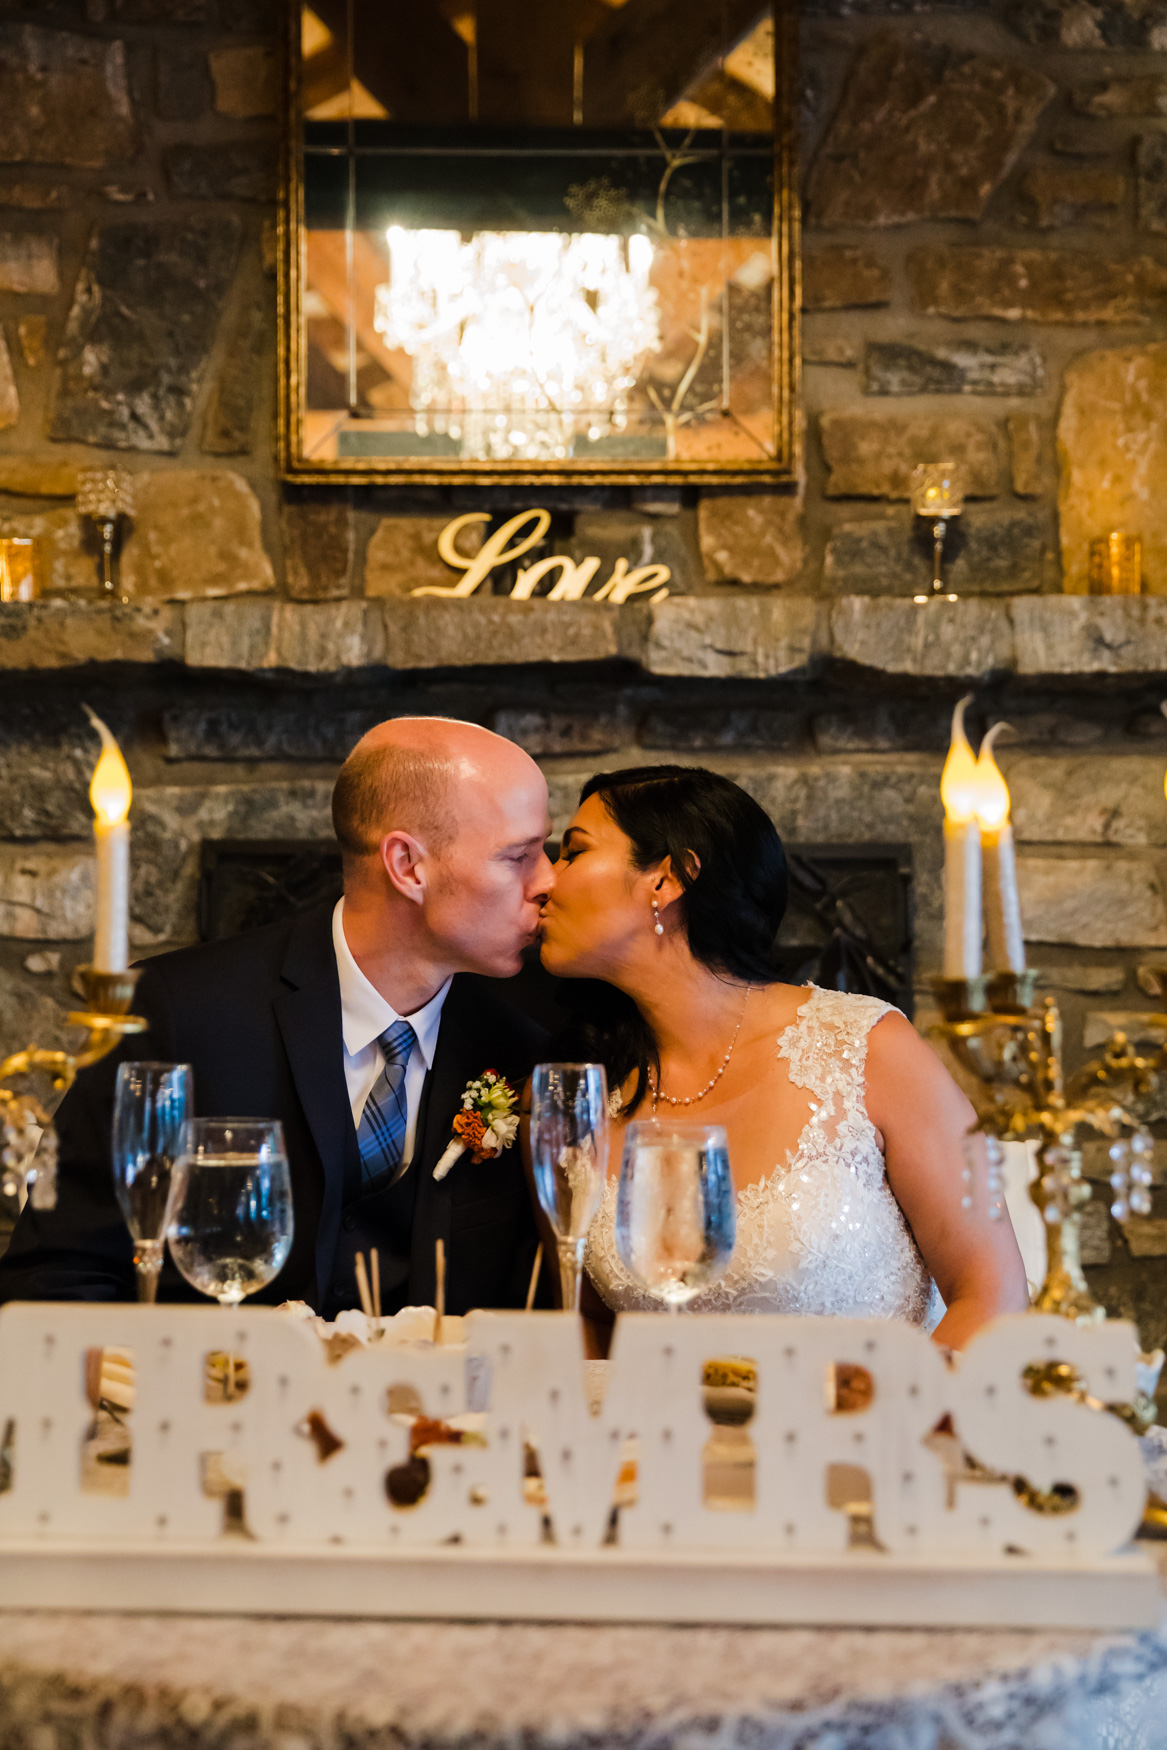 Bride and Groom Kissing at Sweetheart Table Waynesville NC Wedding Photography Inn at Tranquility Farm